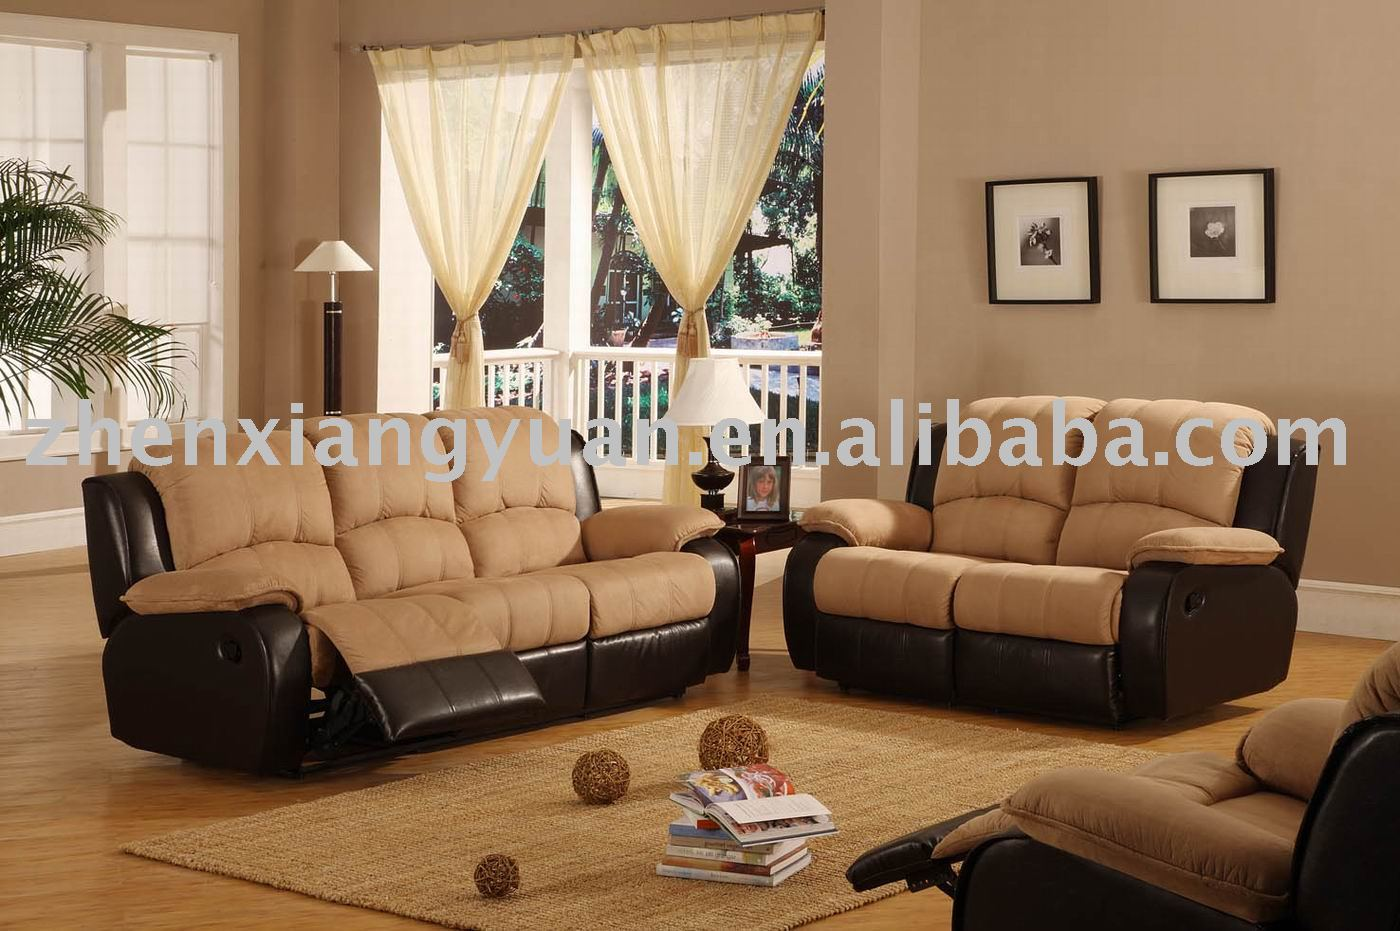 2016 Living Room Products Home Furniture Electric Reclining Sofas In Fabric Buy 2016 Home